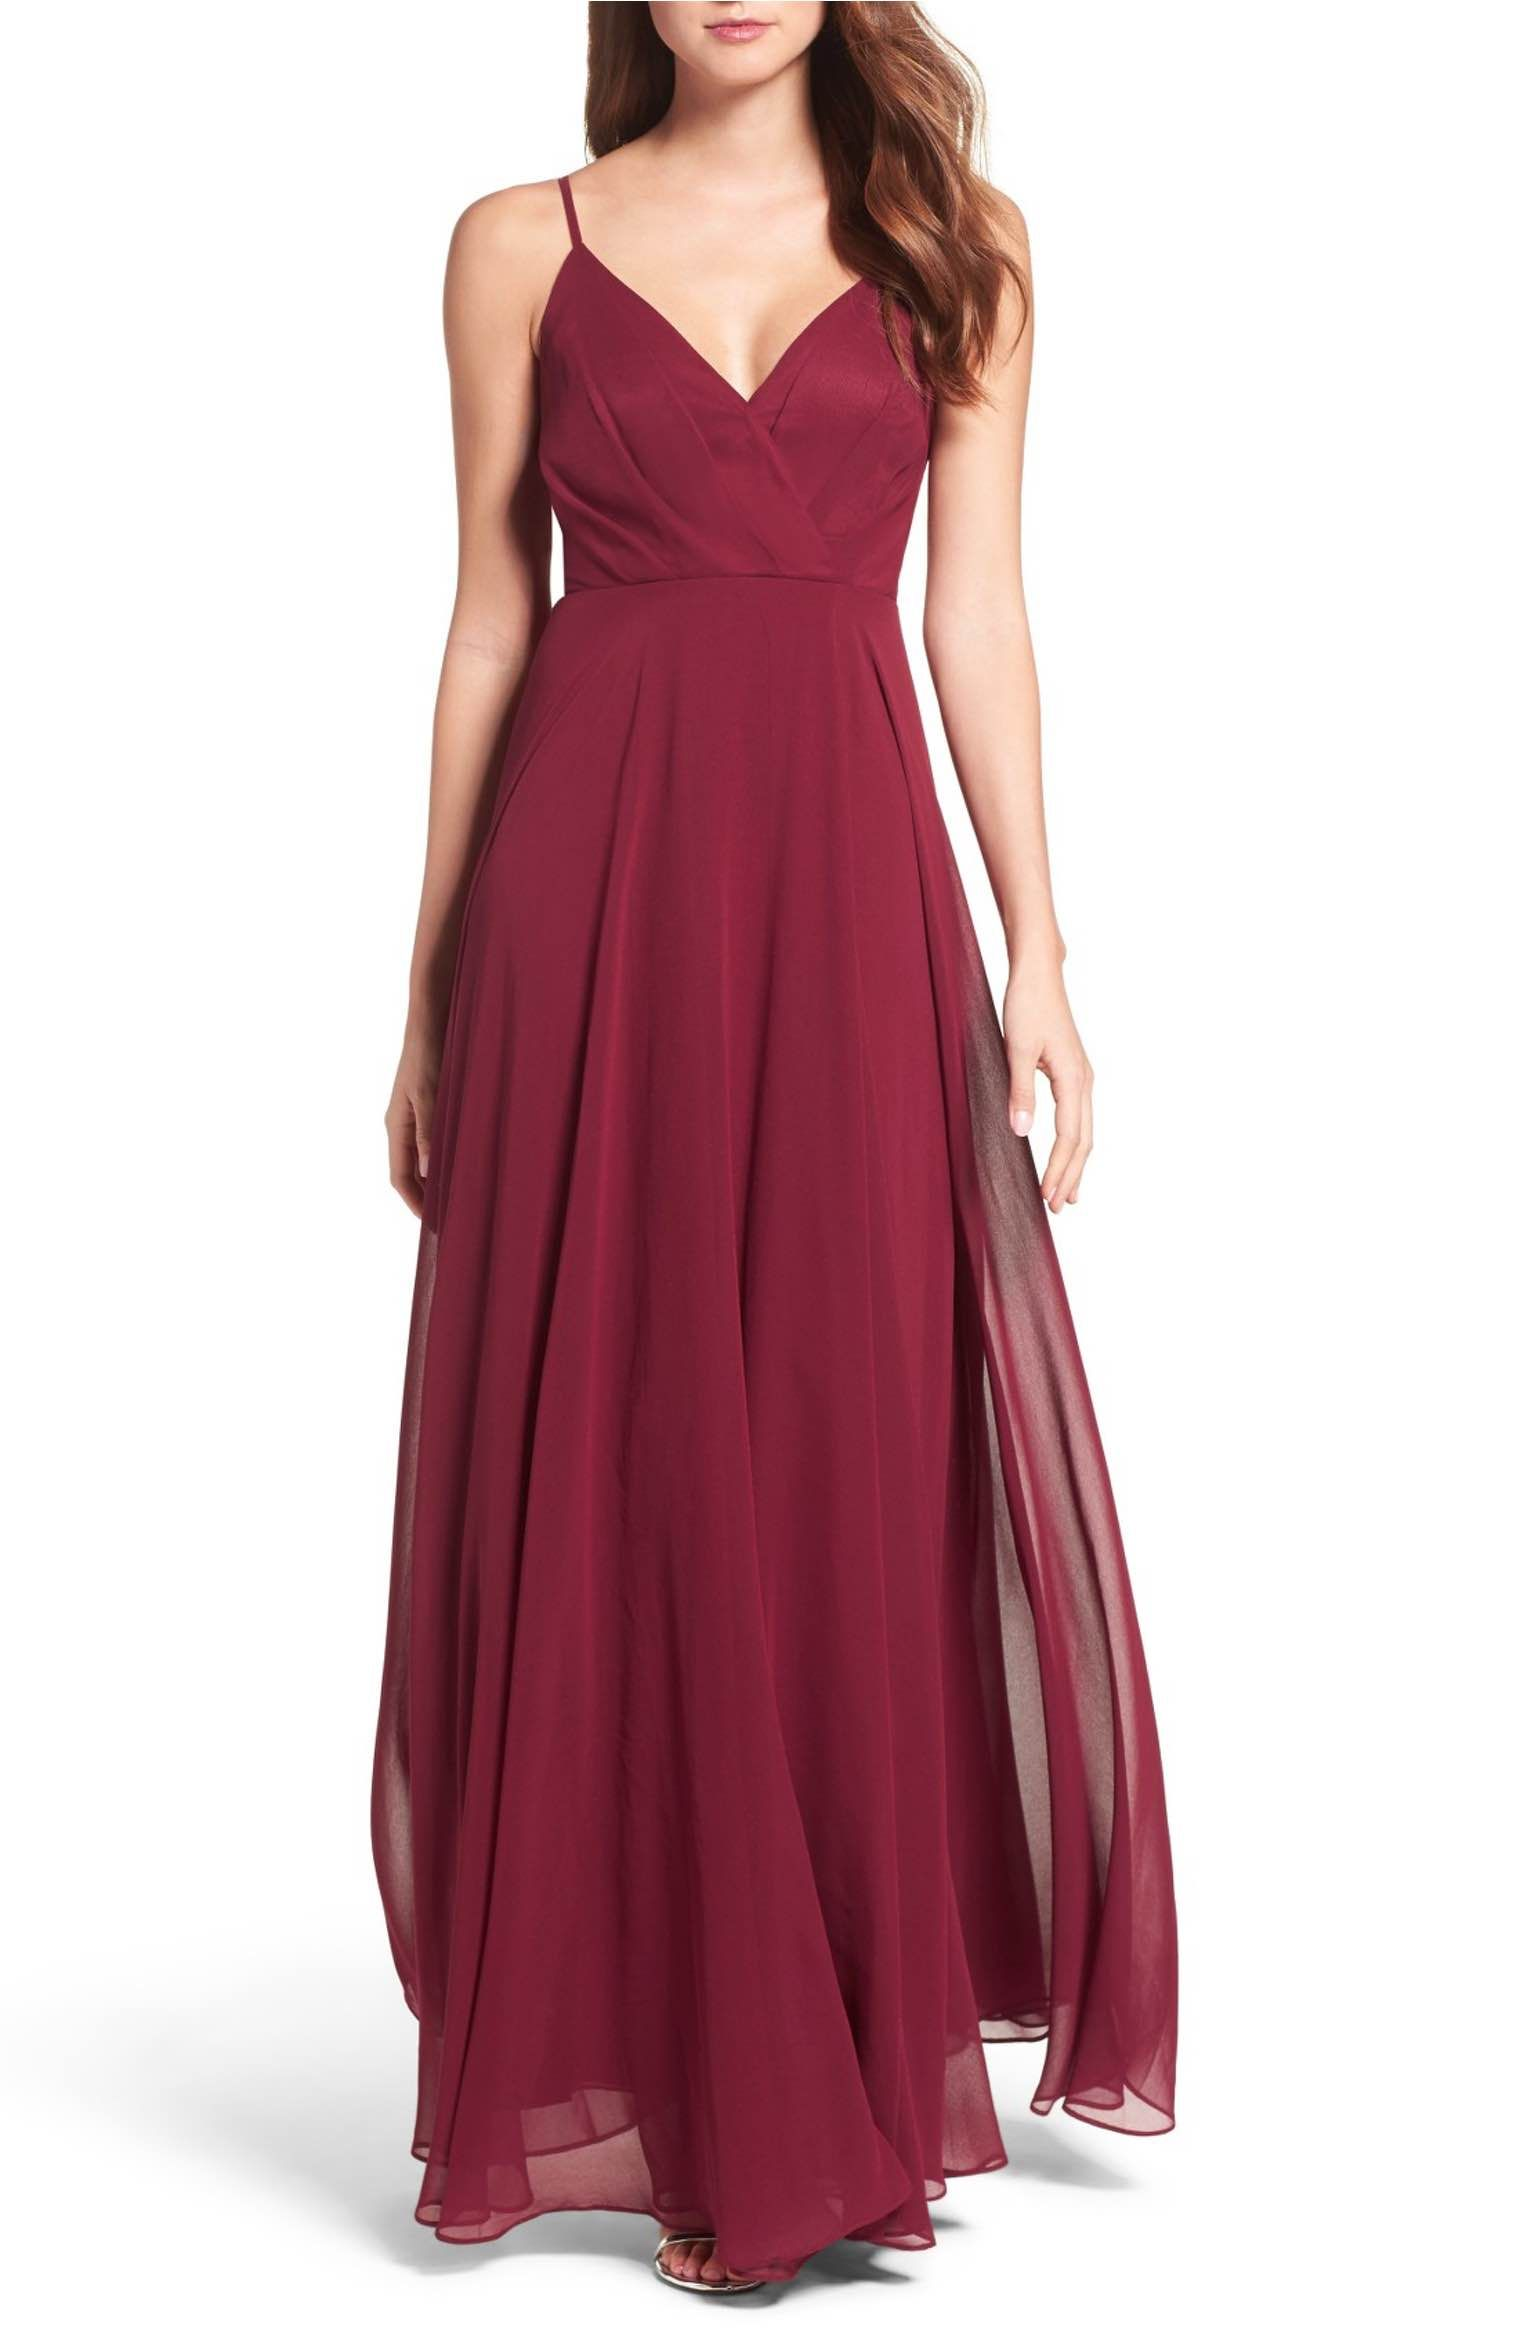 $97 Nordstrom - Lulus Surplice Chiffon Gown   (prom) dress for ...